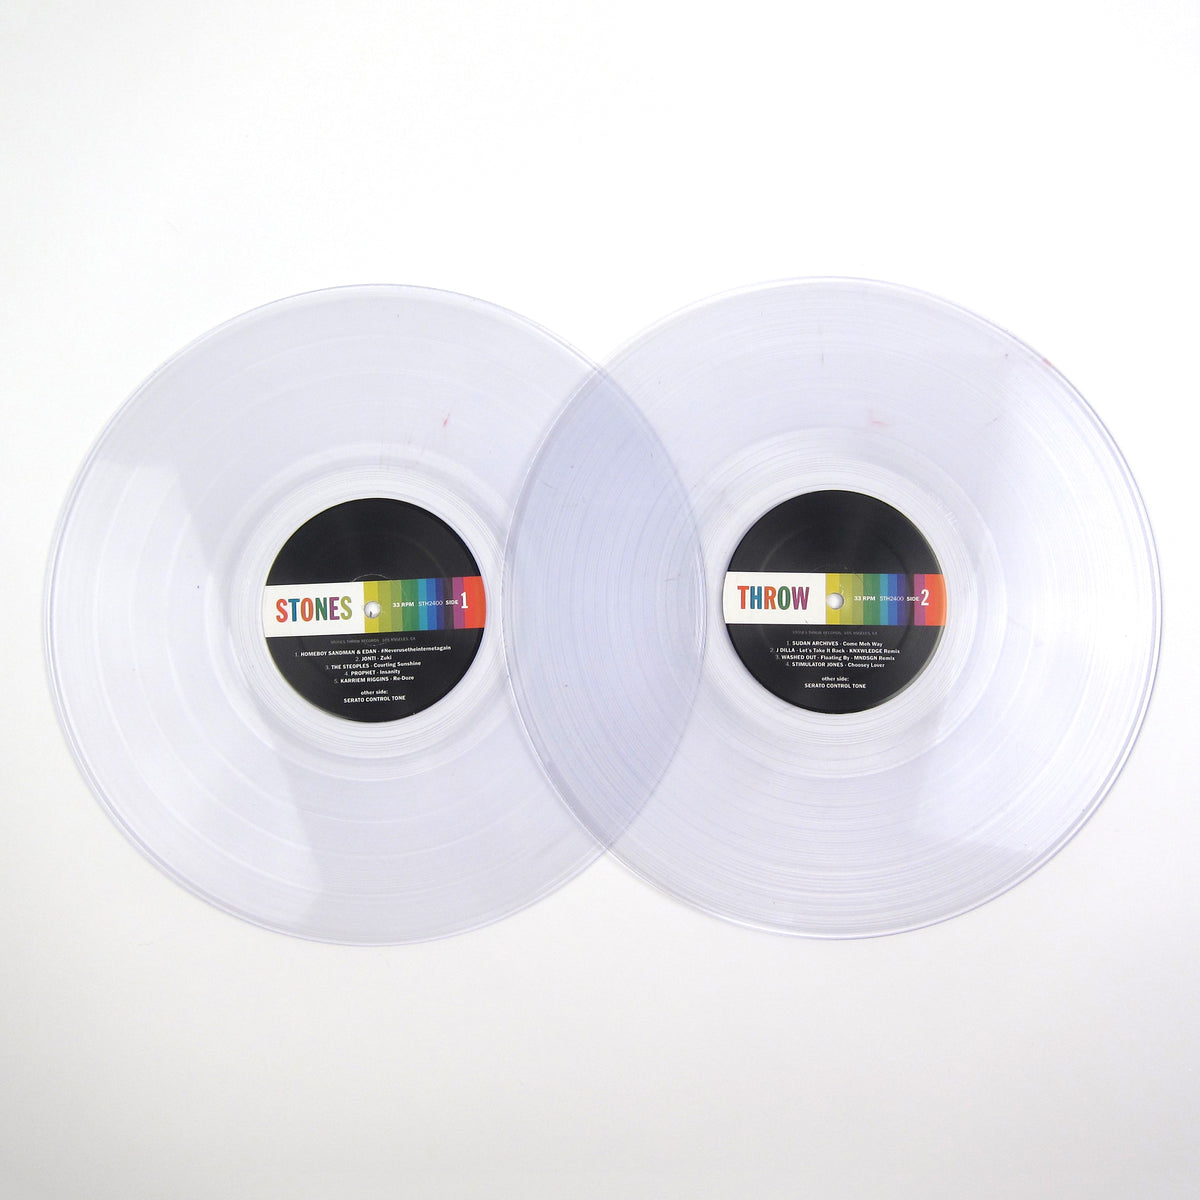 Serato: Serato x Stones Throw (Serato Control Vinyl, Colored Vinyl) Vinyl 2LP+Slipmats